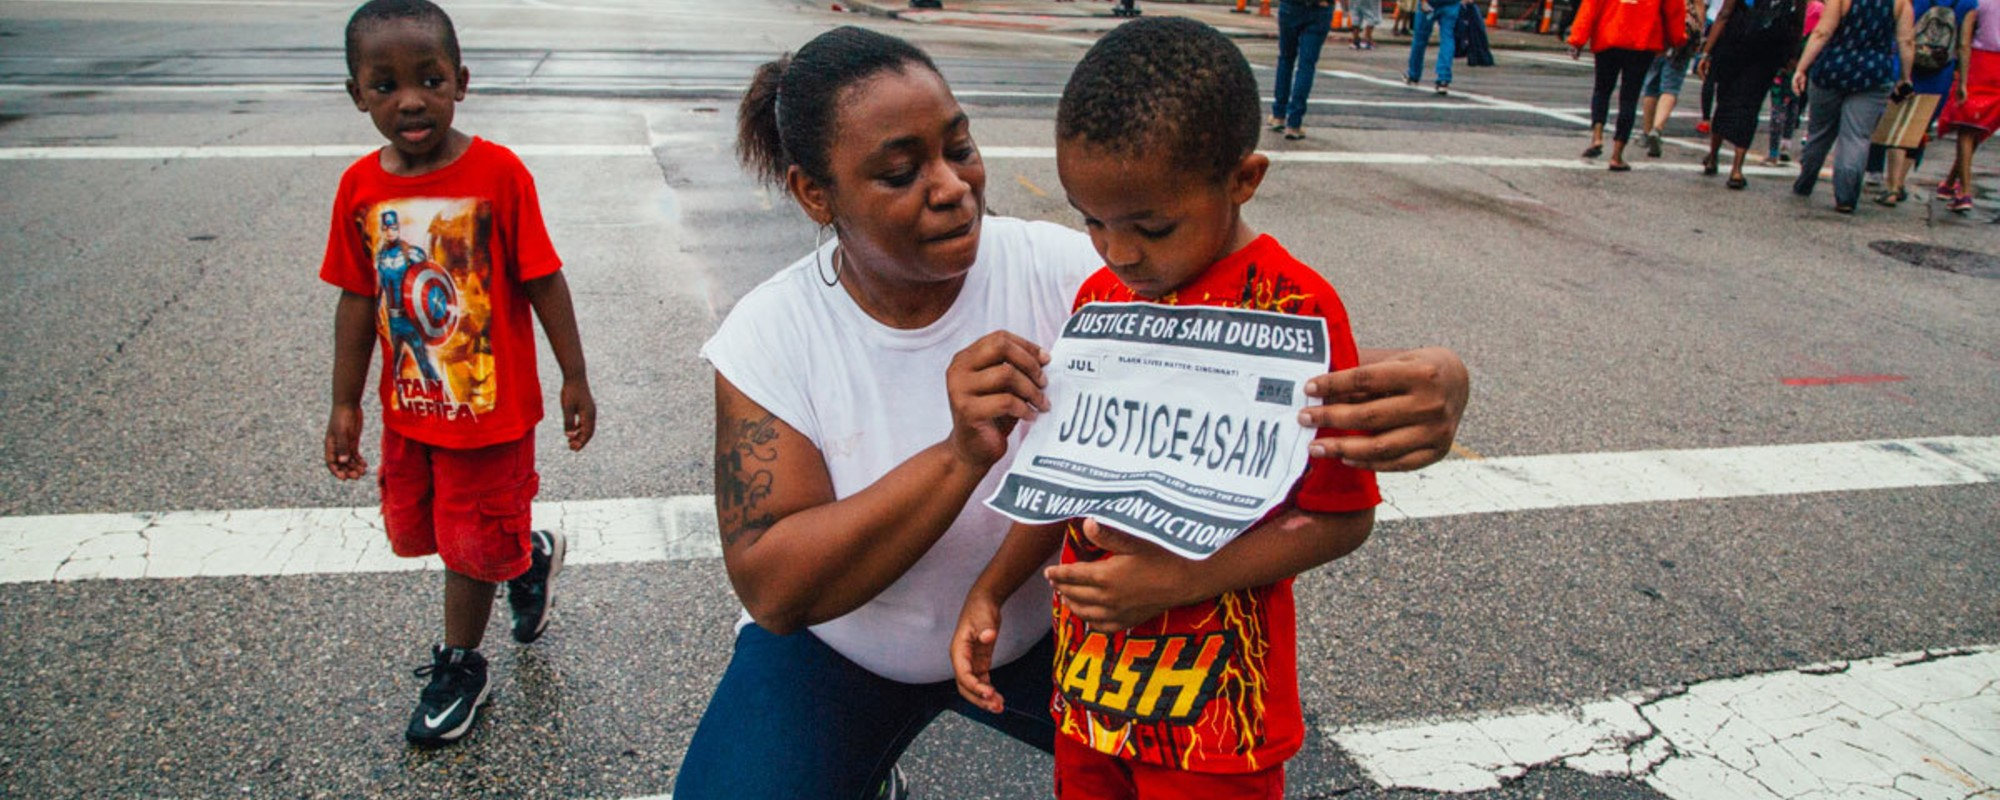 Scenes from Cincinnati After the Cop Who Killed Samuel Dubose Got Indicted for Murder